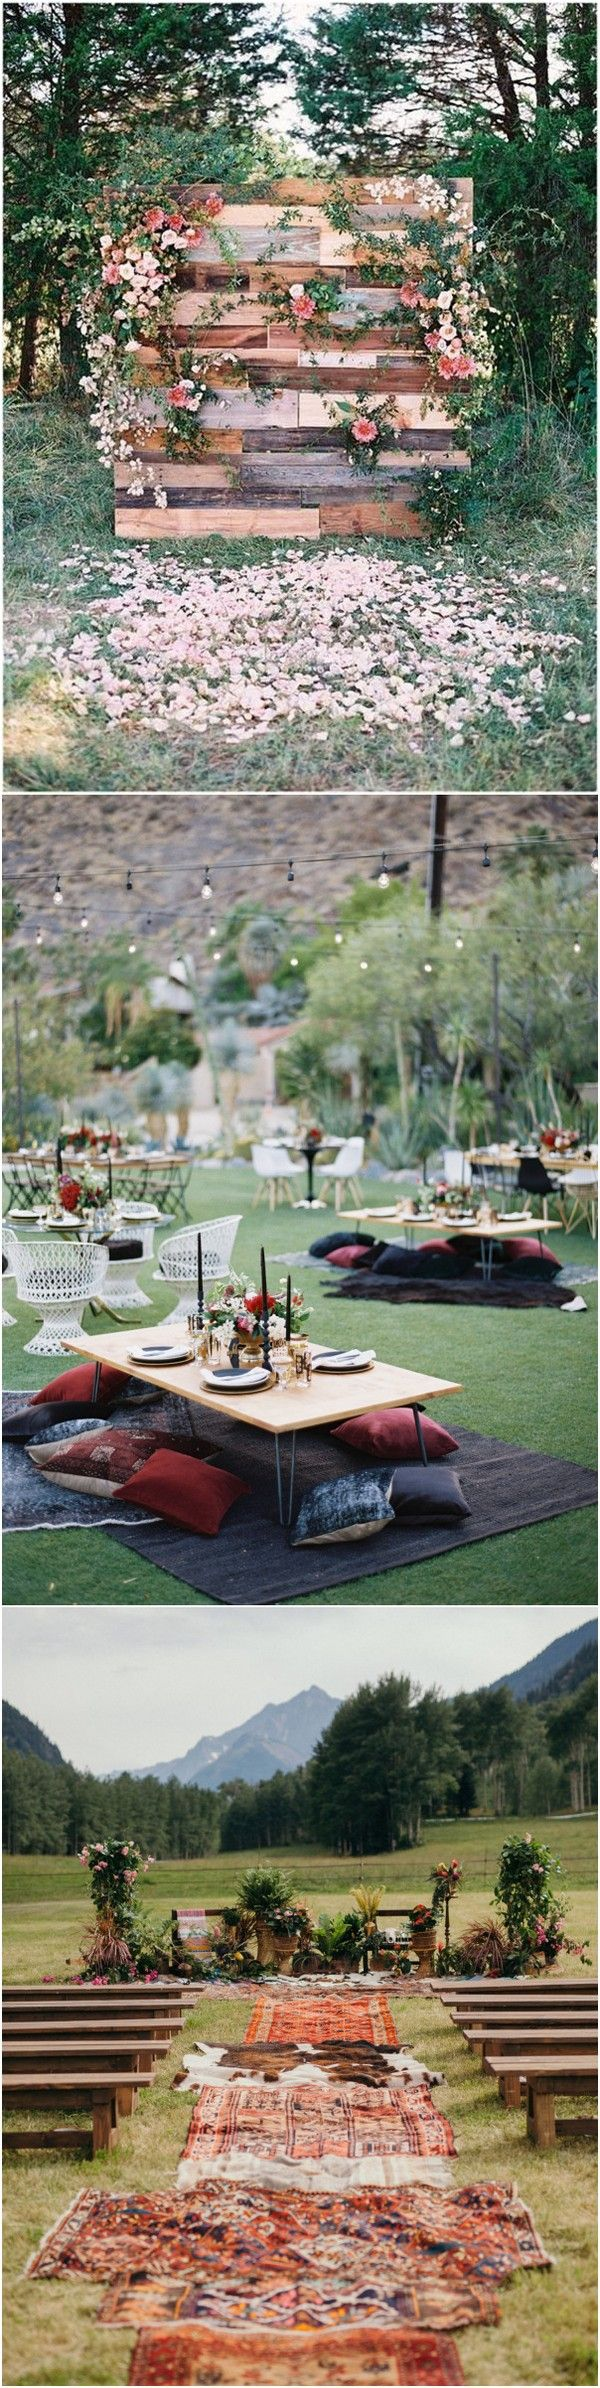 Wedding decoration ideas 2018   Charming Boho Wedding Ideas for  Trends  Delish  Pinterest